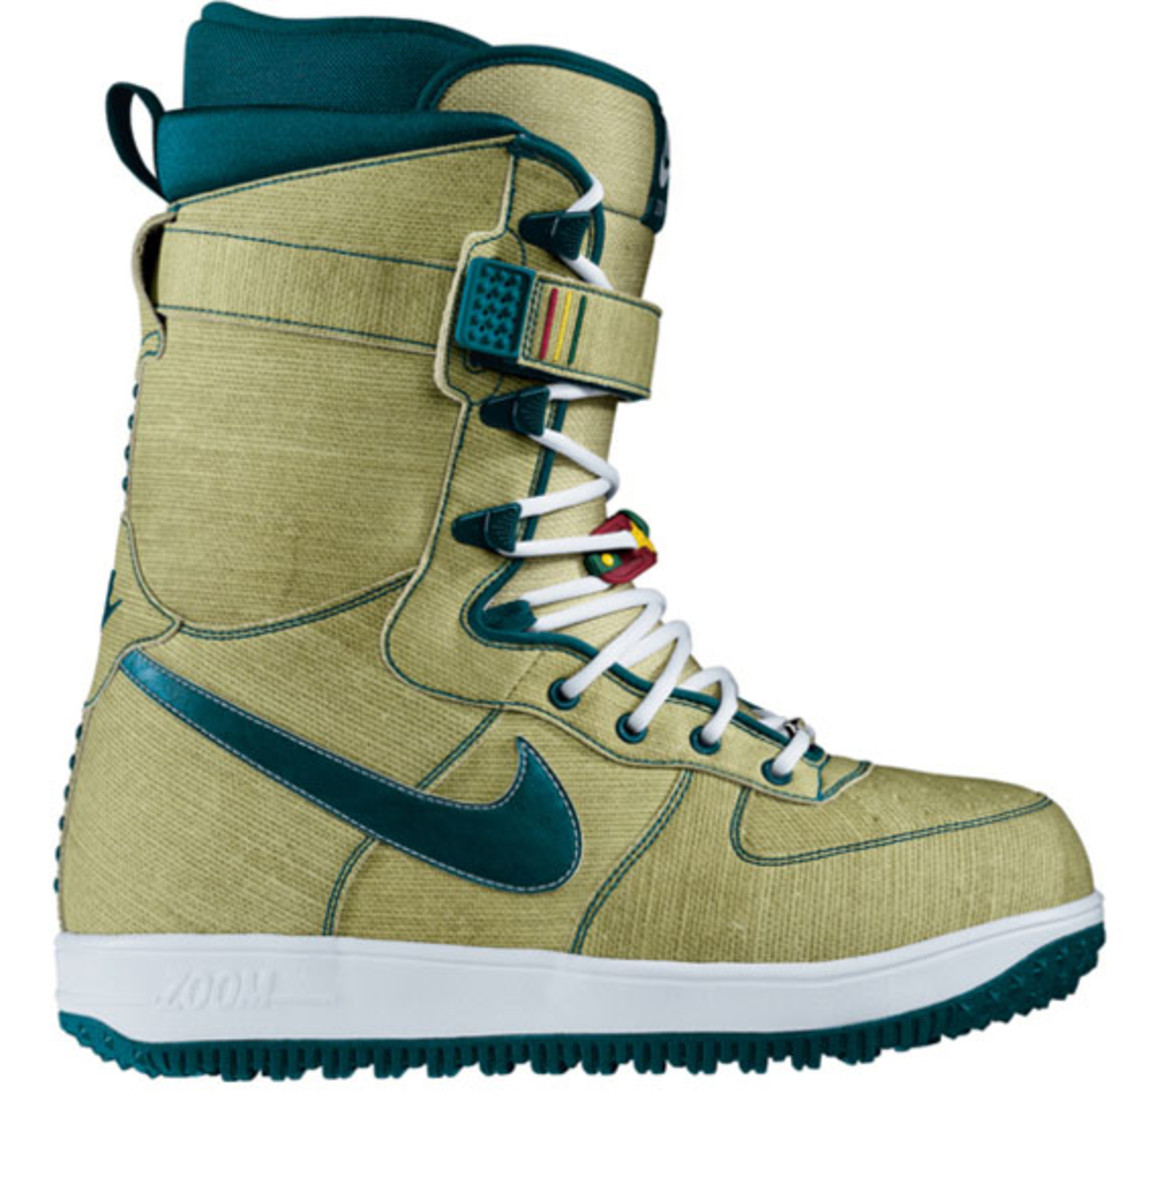 nike-snowboarding-boots-6